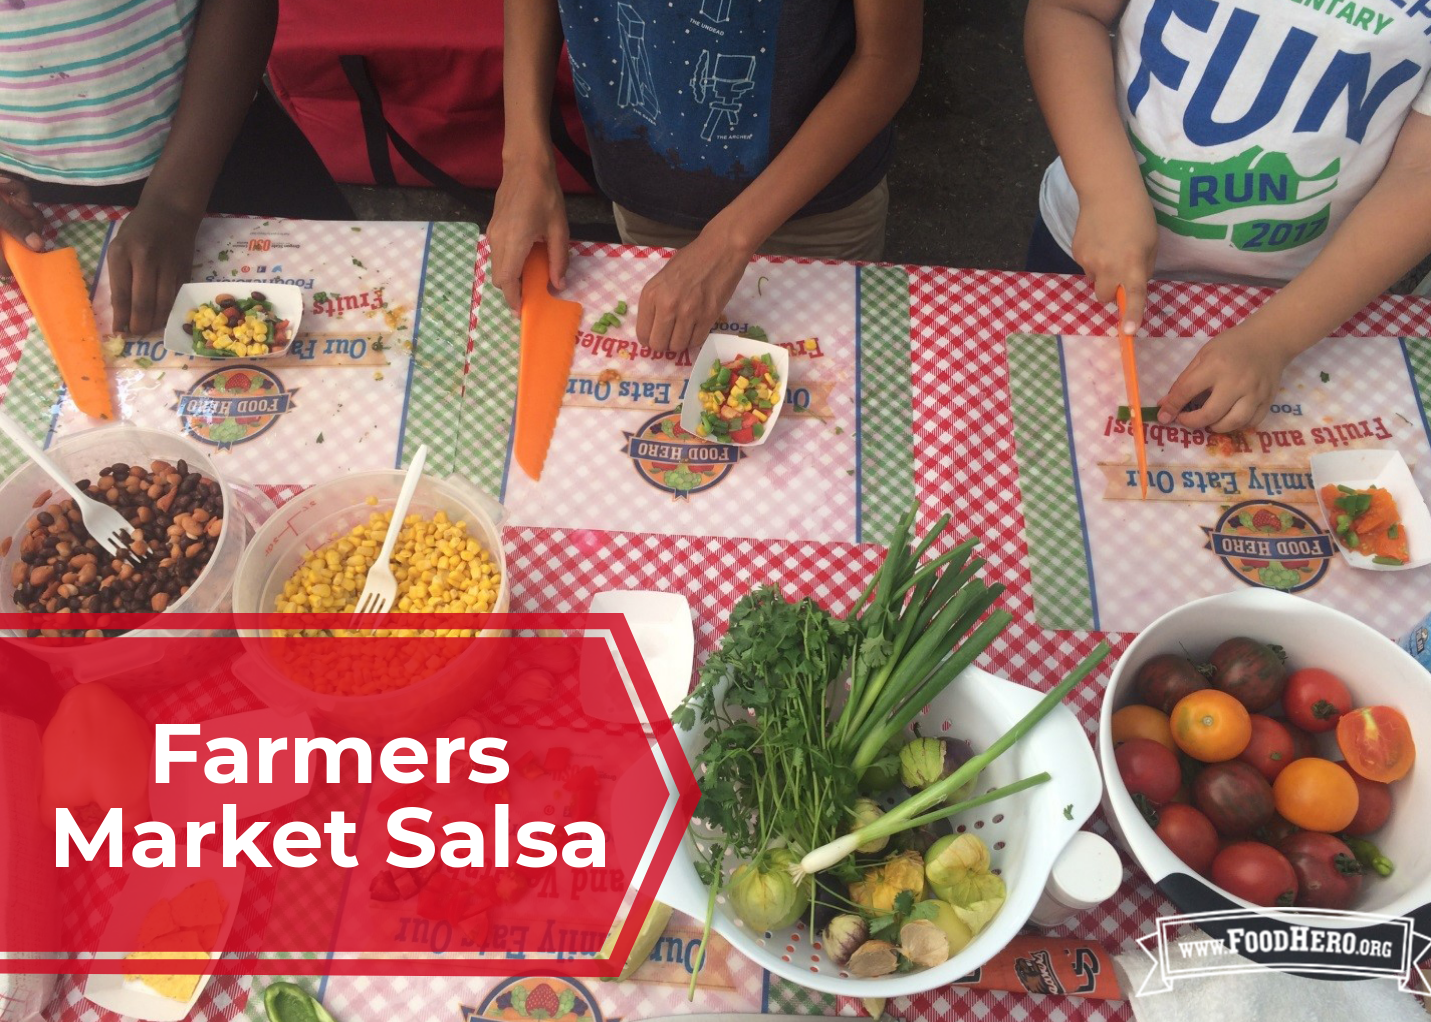 Making Farmers Market Salsa